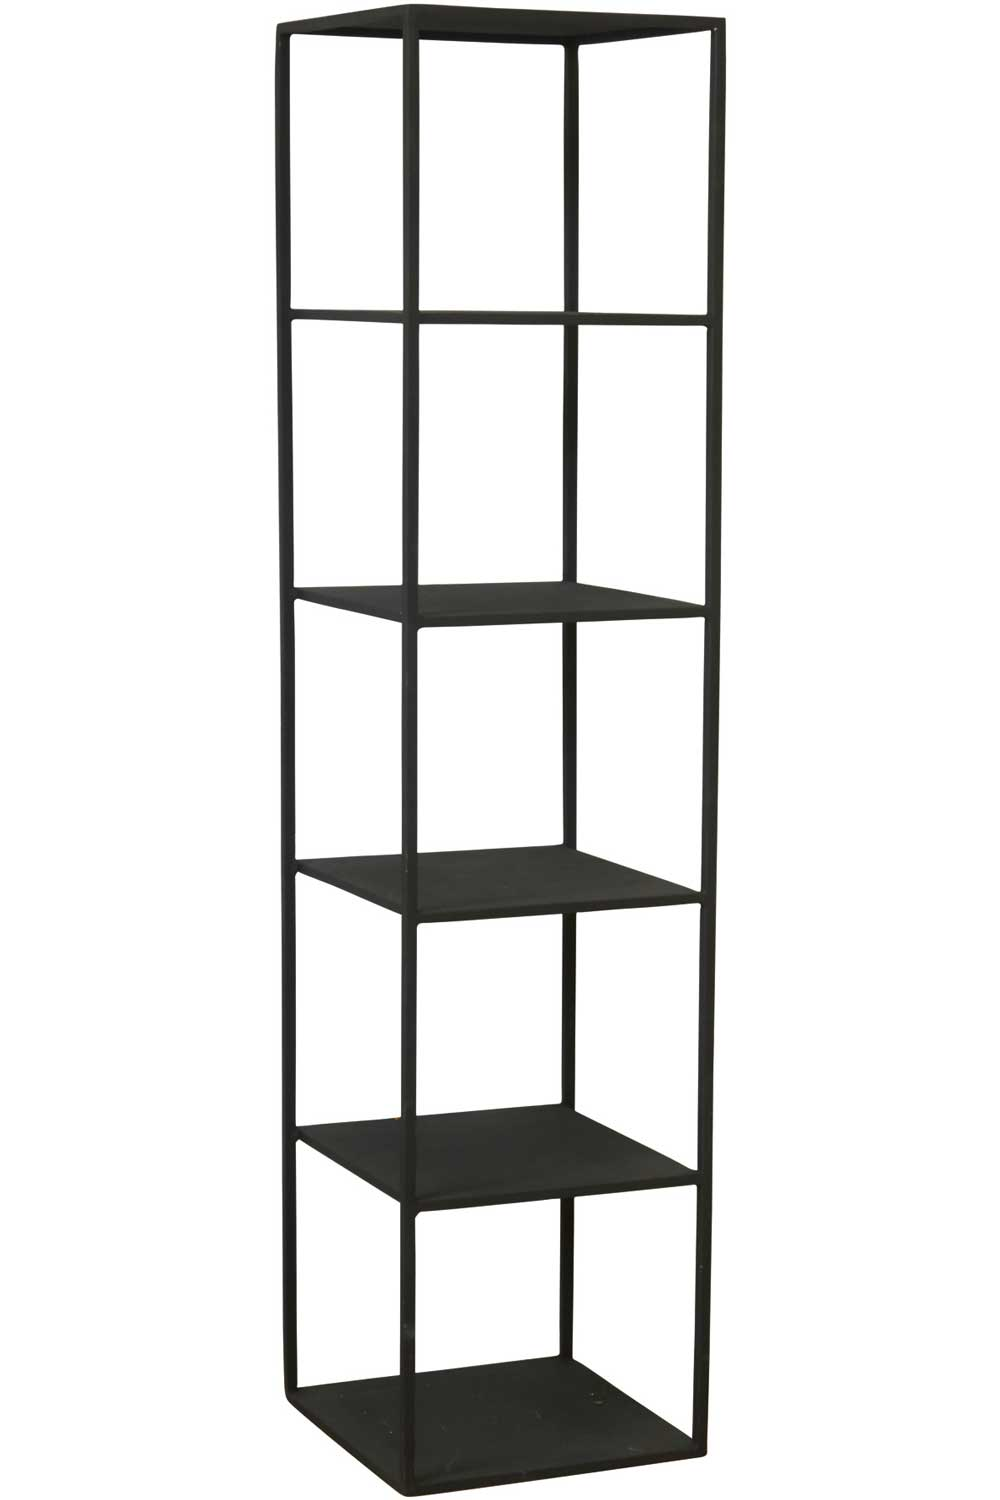 Image of   HOUSE DOCTOR Rack reol 35x35 cm